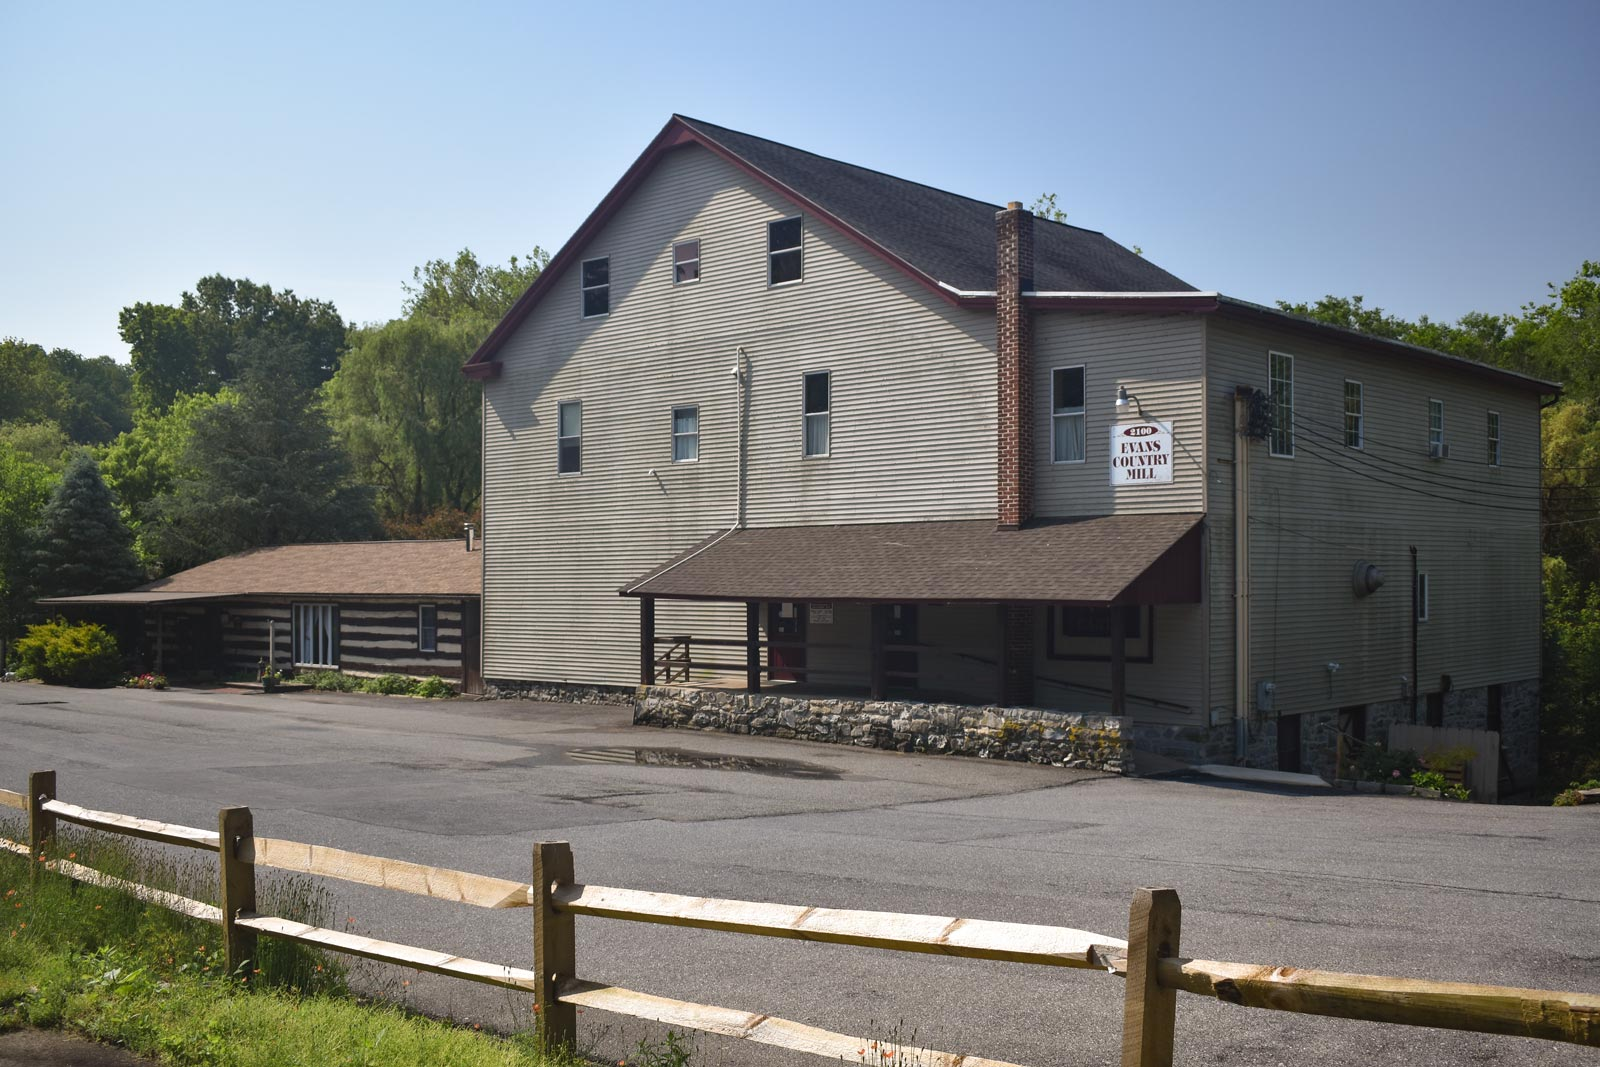 Evans Country Mill - Modern